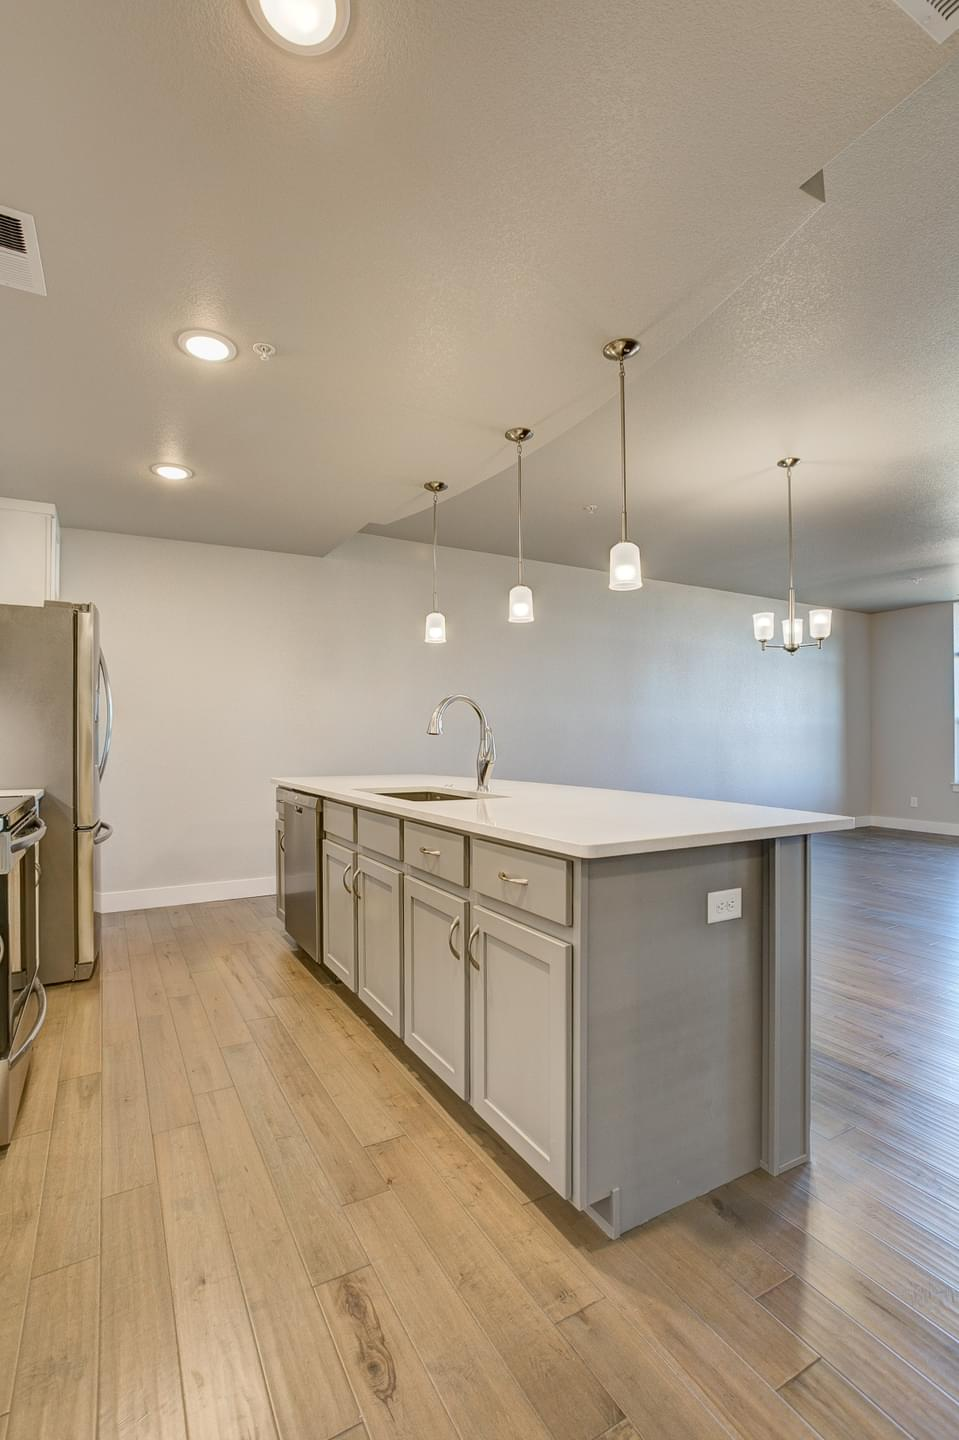 962sf New Home